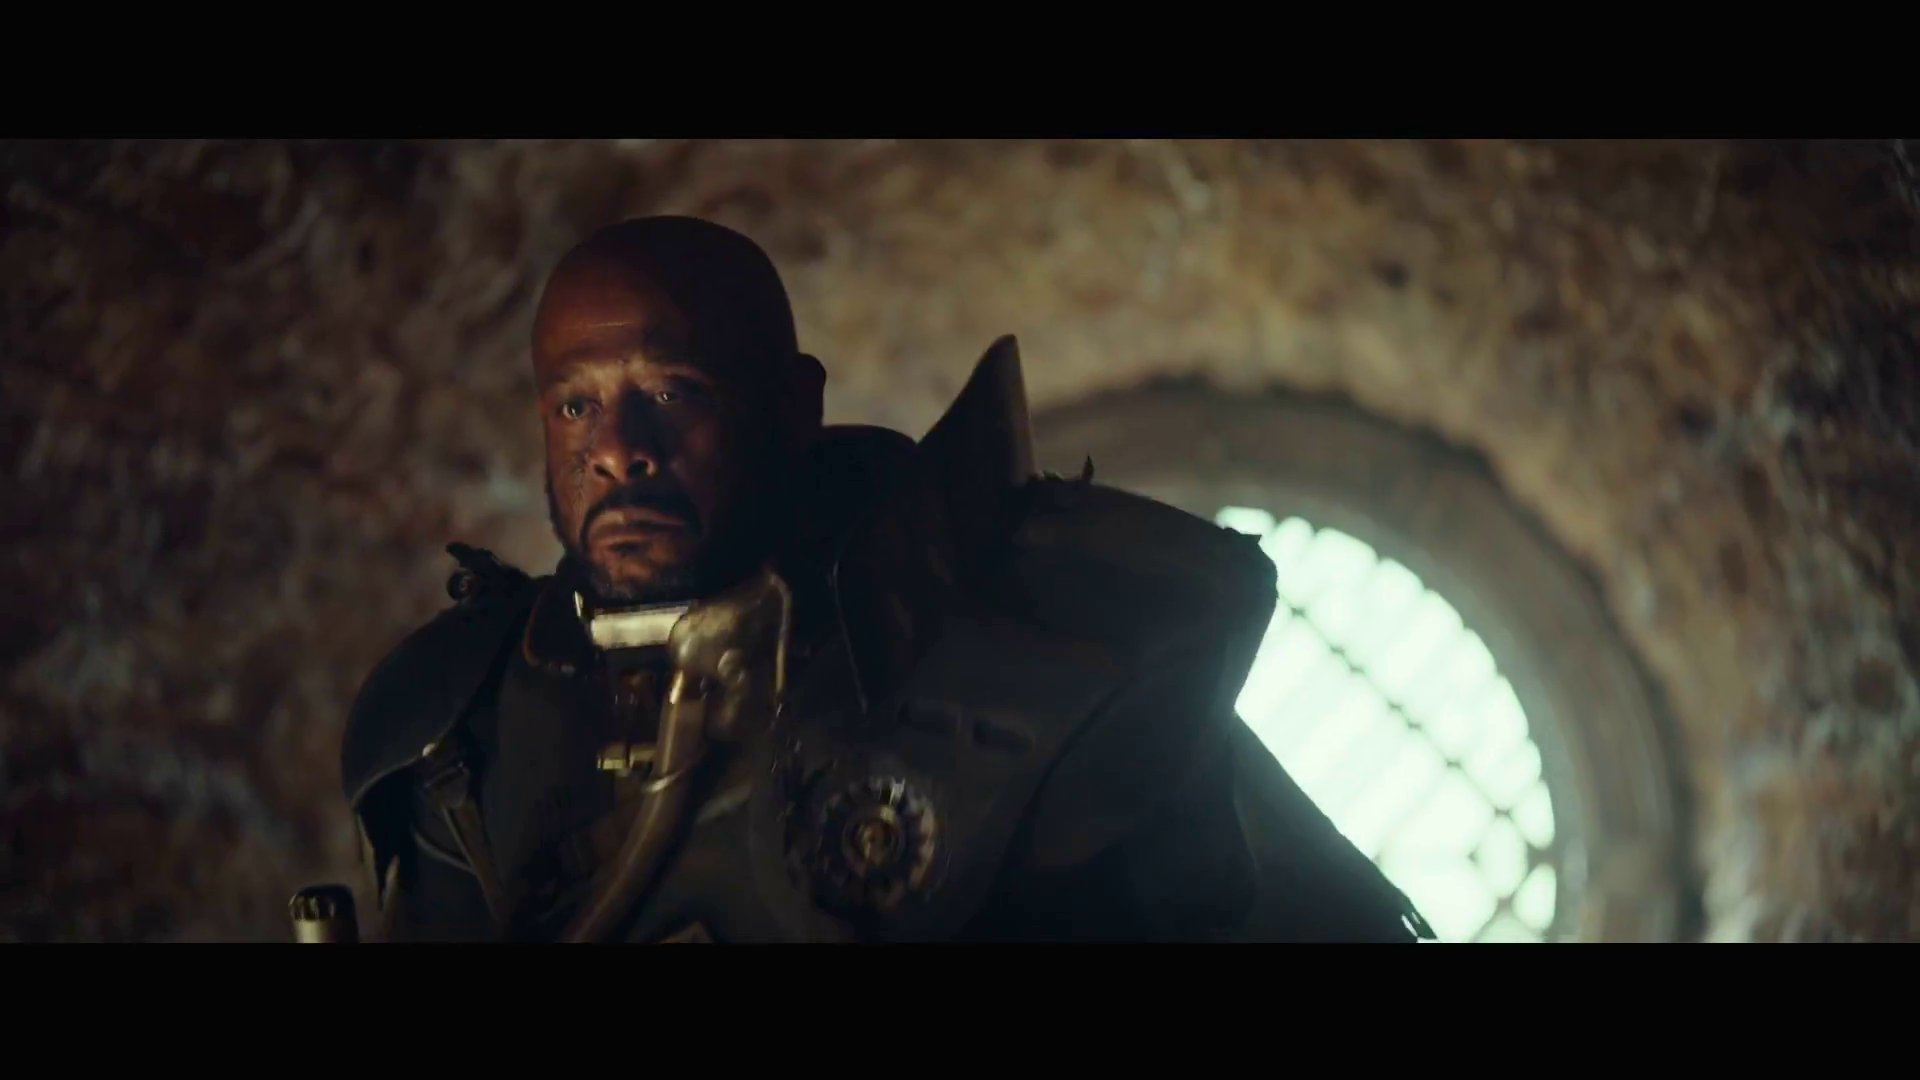 Darth Vader Rises In Rogue One: A Star Wars Story Trailer Darth Vader Rises In Rogue One: A Star Wars Story Trailer new photo